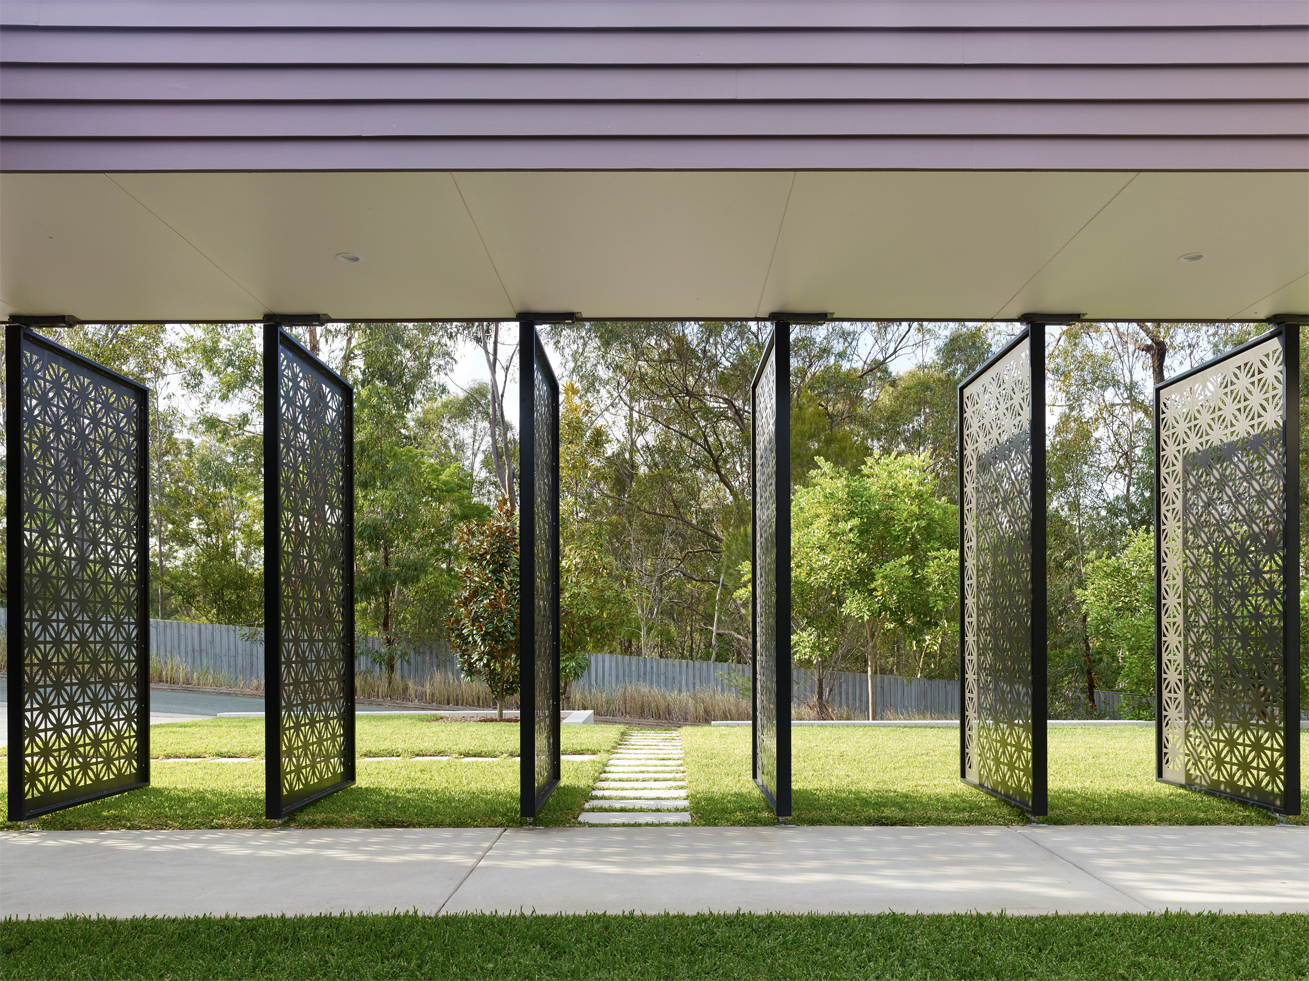 Grand Designs Australia: High Flyer - Architects' masterpiece - exterior: laser cut screens feature inside and out